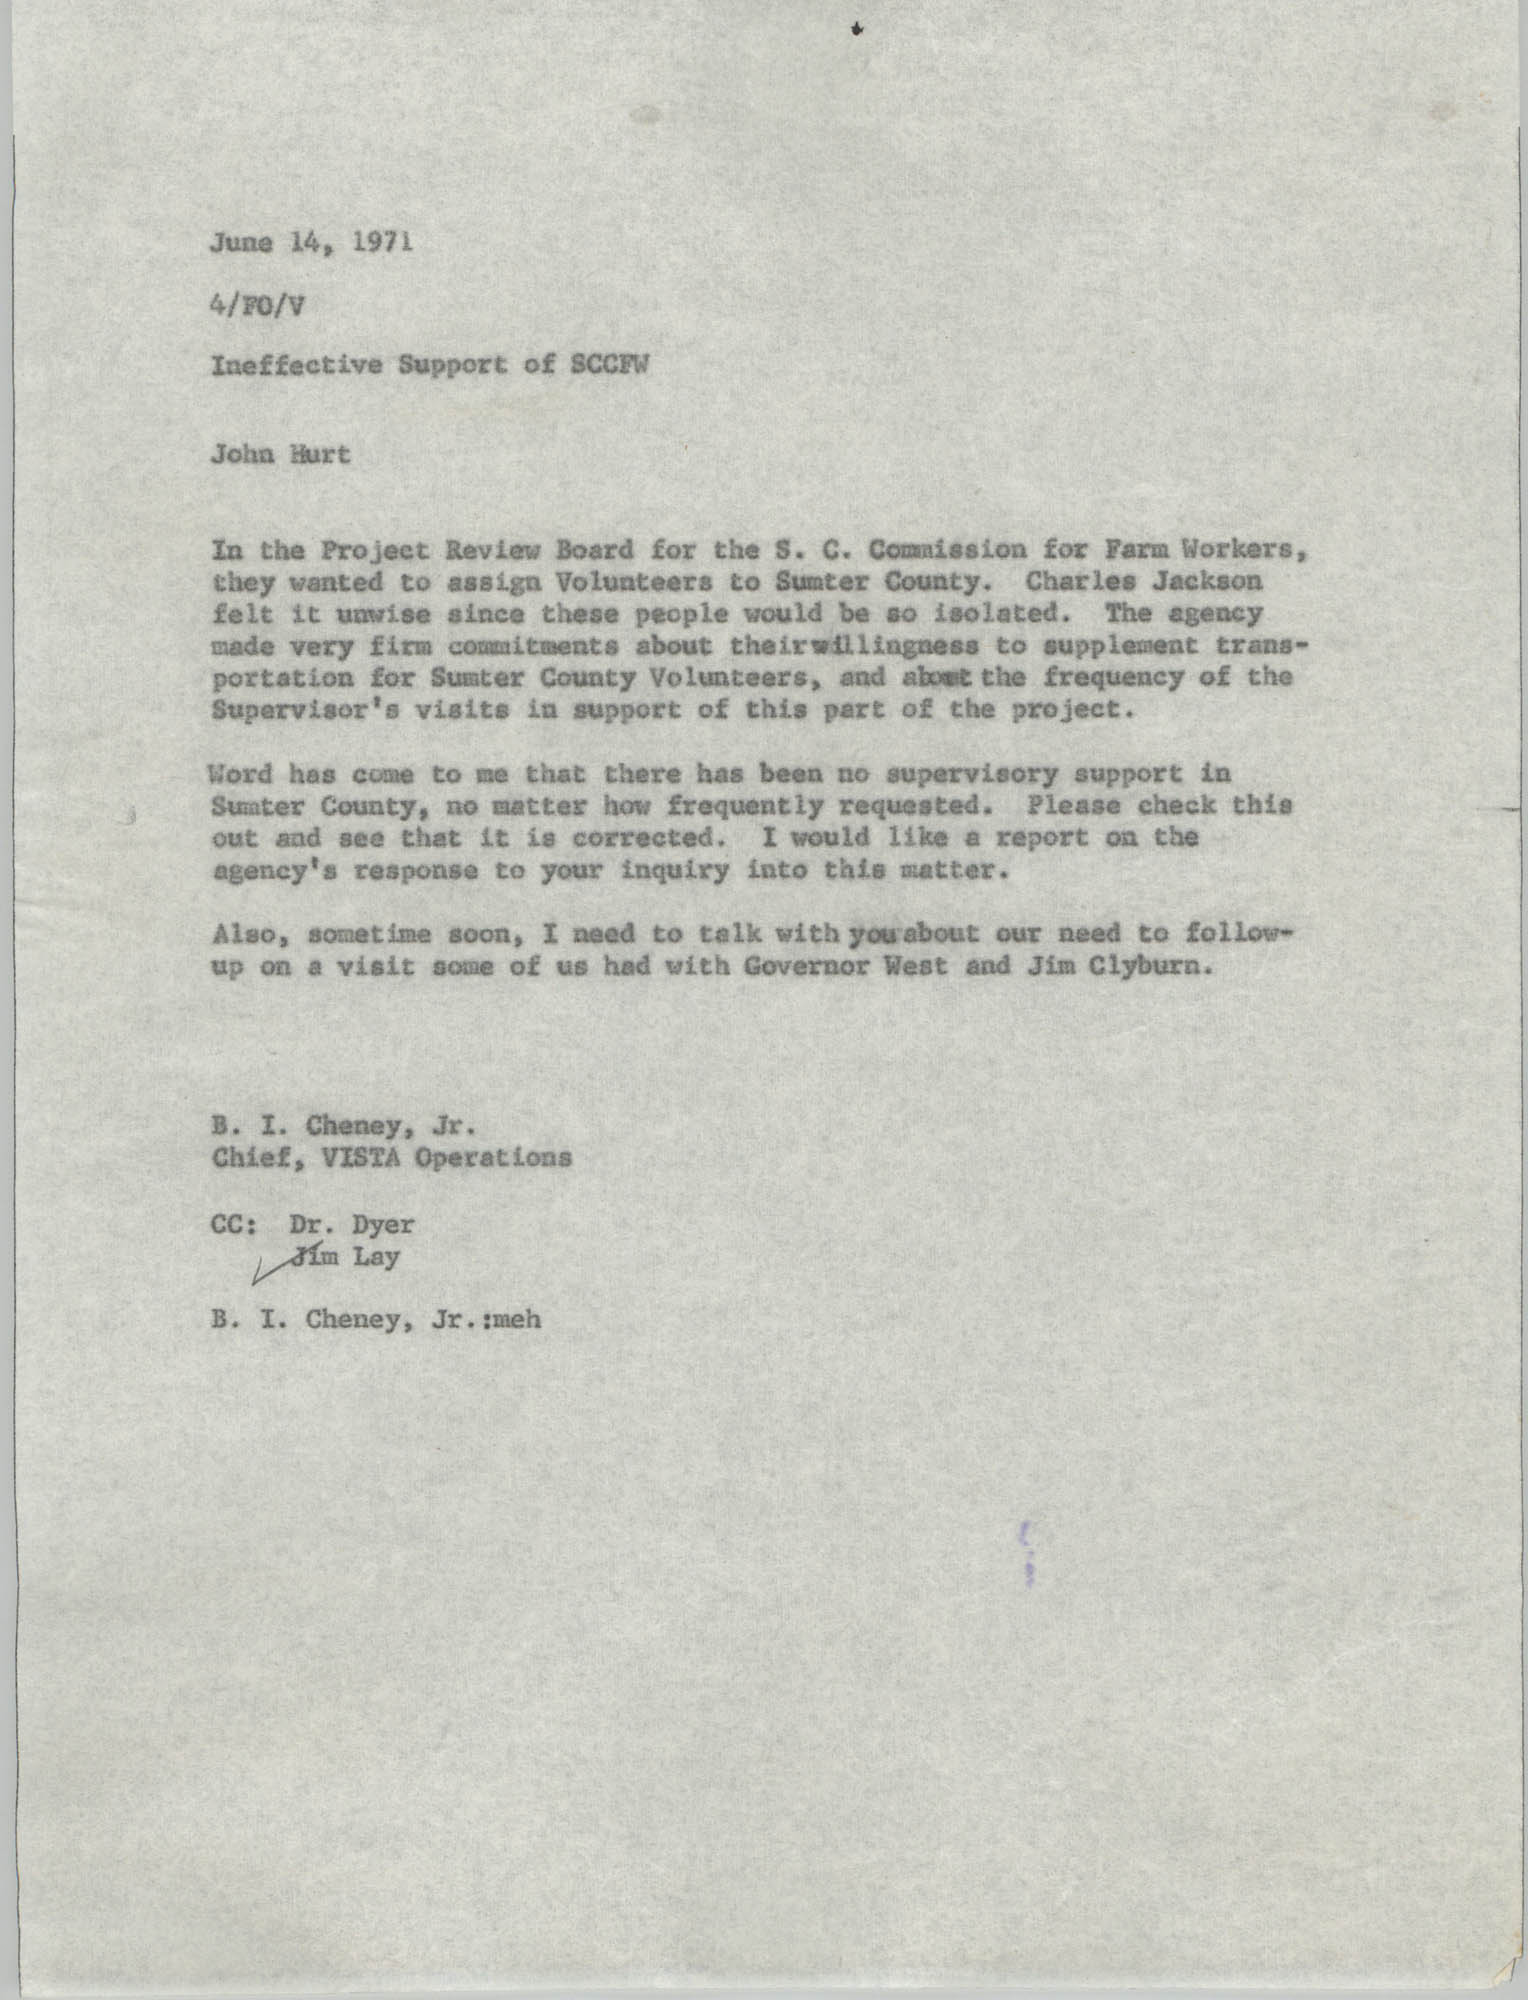 Letter from B. I. Cheney, Jr. to John Hurt, June 14, 1971